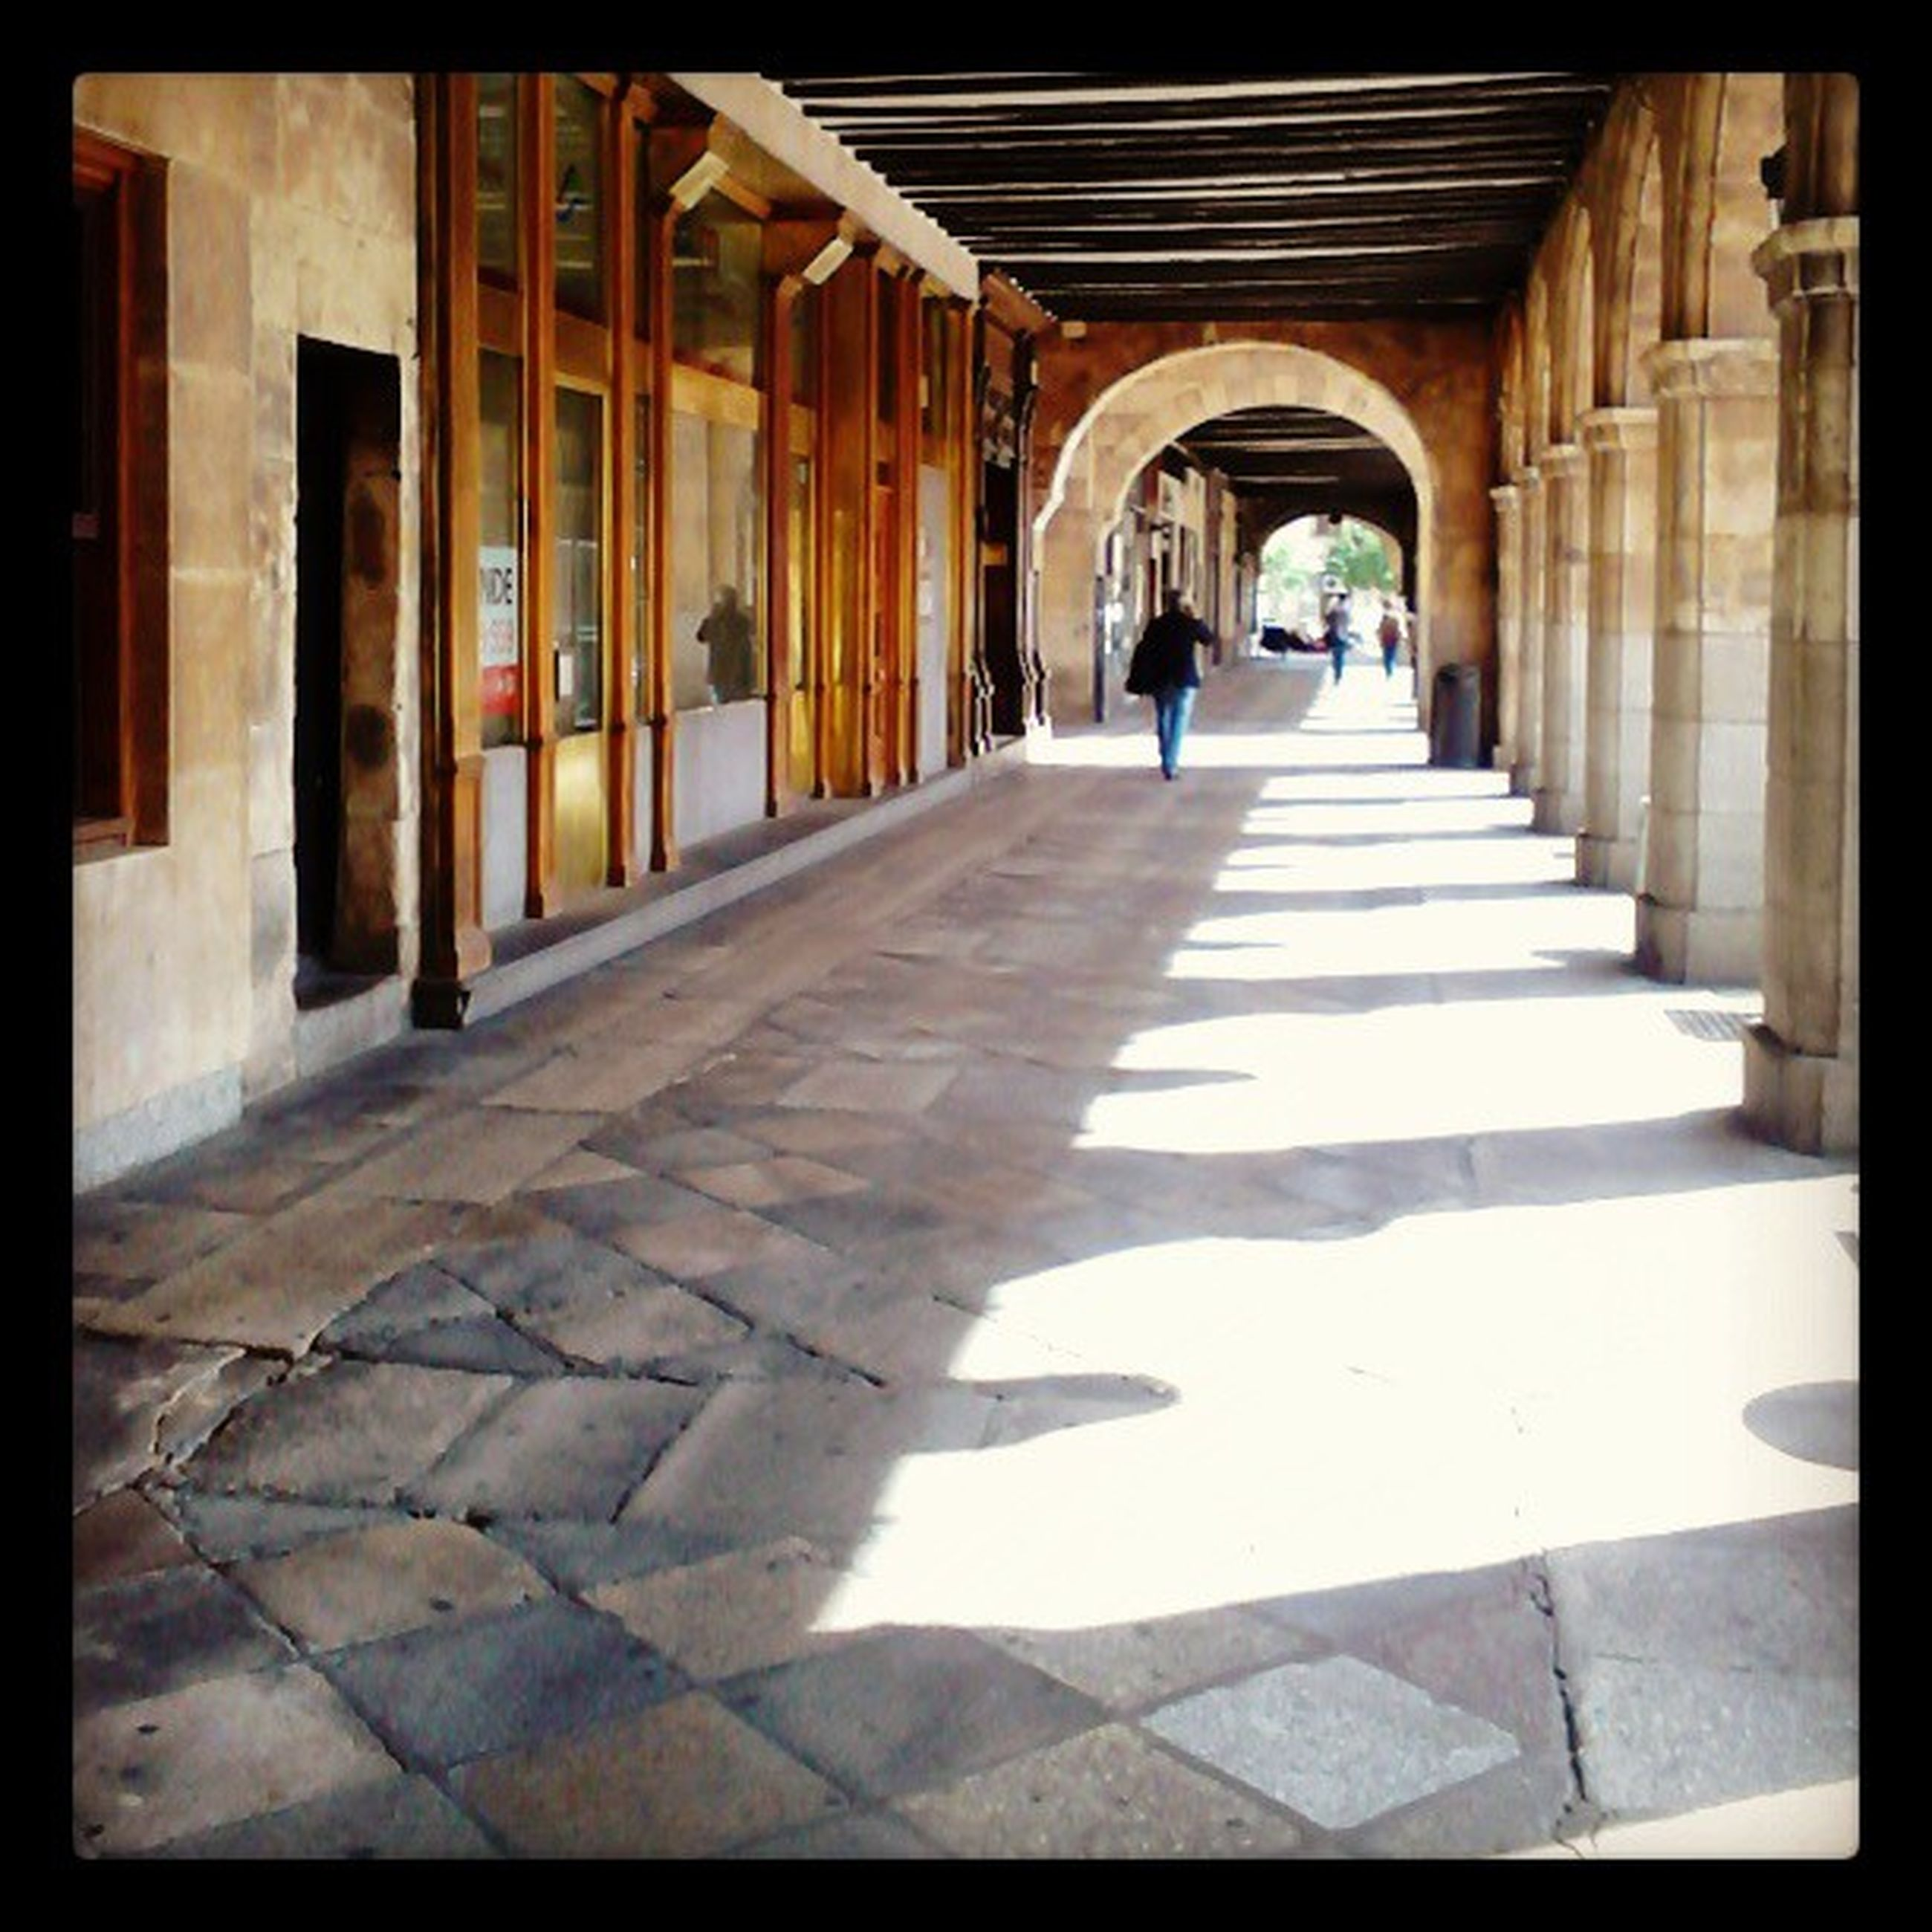 architecture, built structure, the way forward, diminishing perspective, indoors, corridor, building exterior, architectural column, empty, tiled floor, column, transfer print, building, in a row, vanishing point, flooring, colonnade, sunlight, shadow, walkway